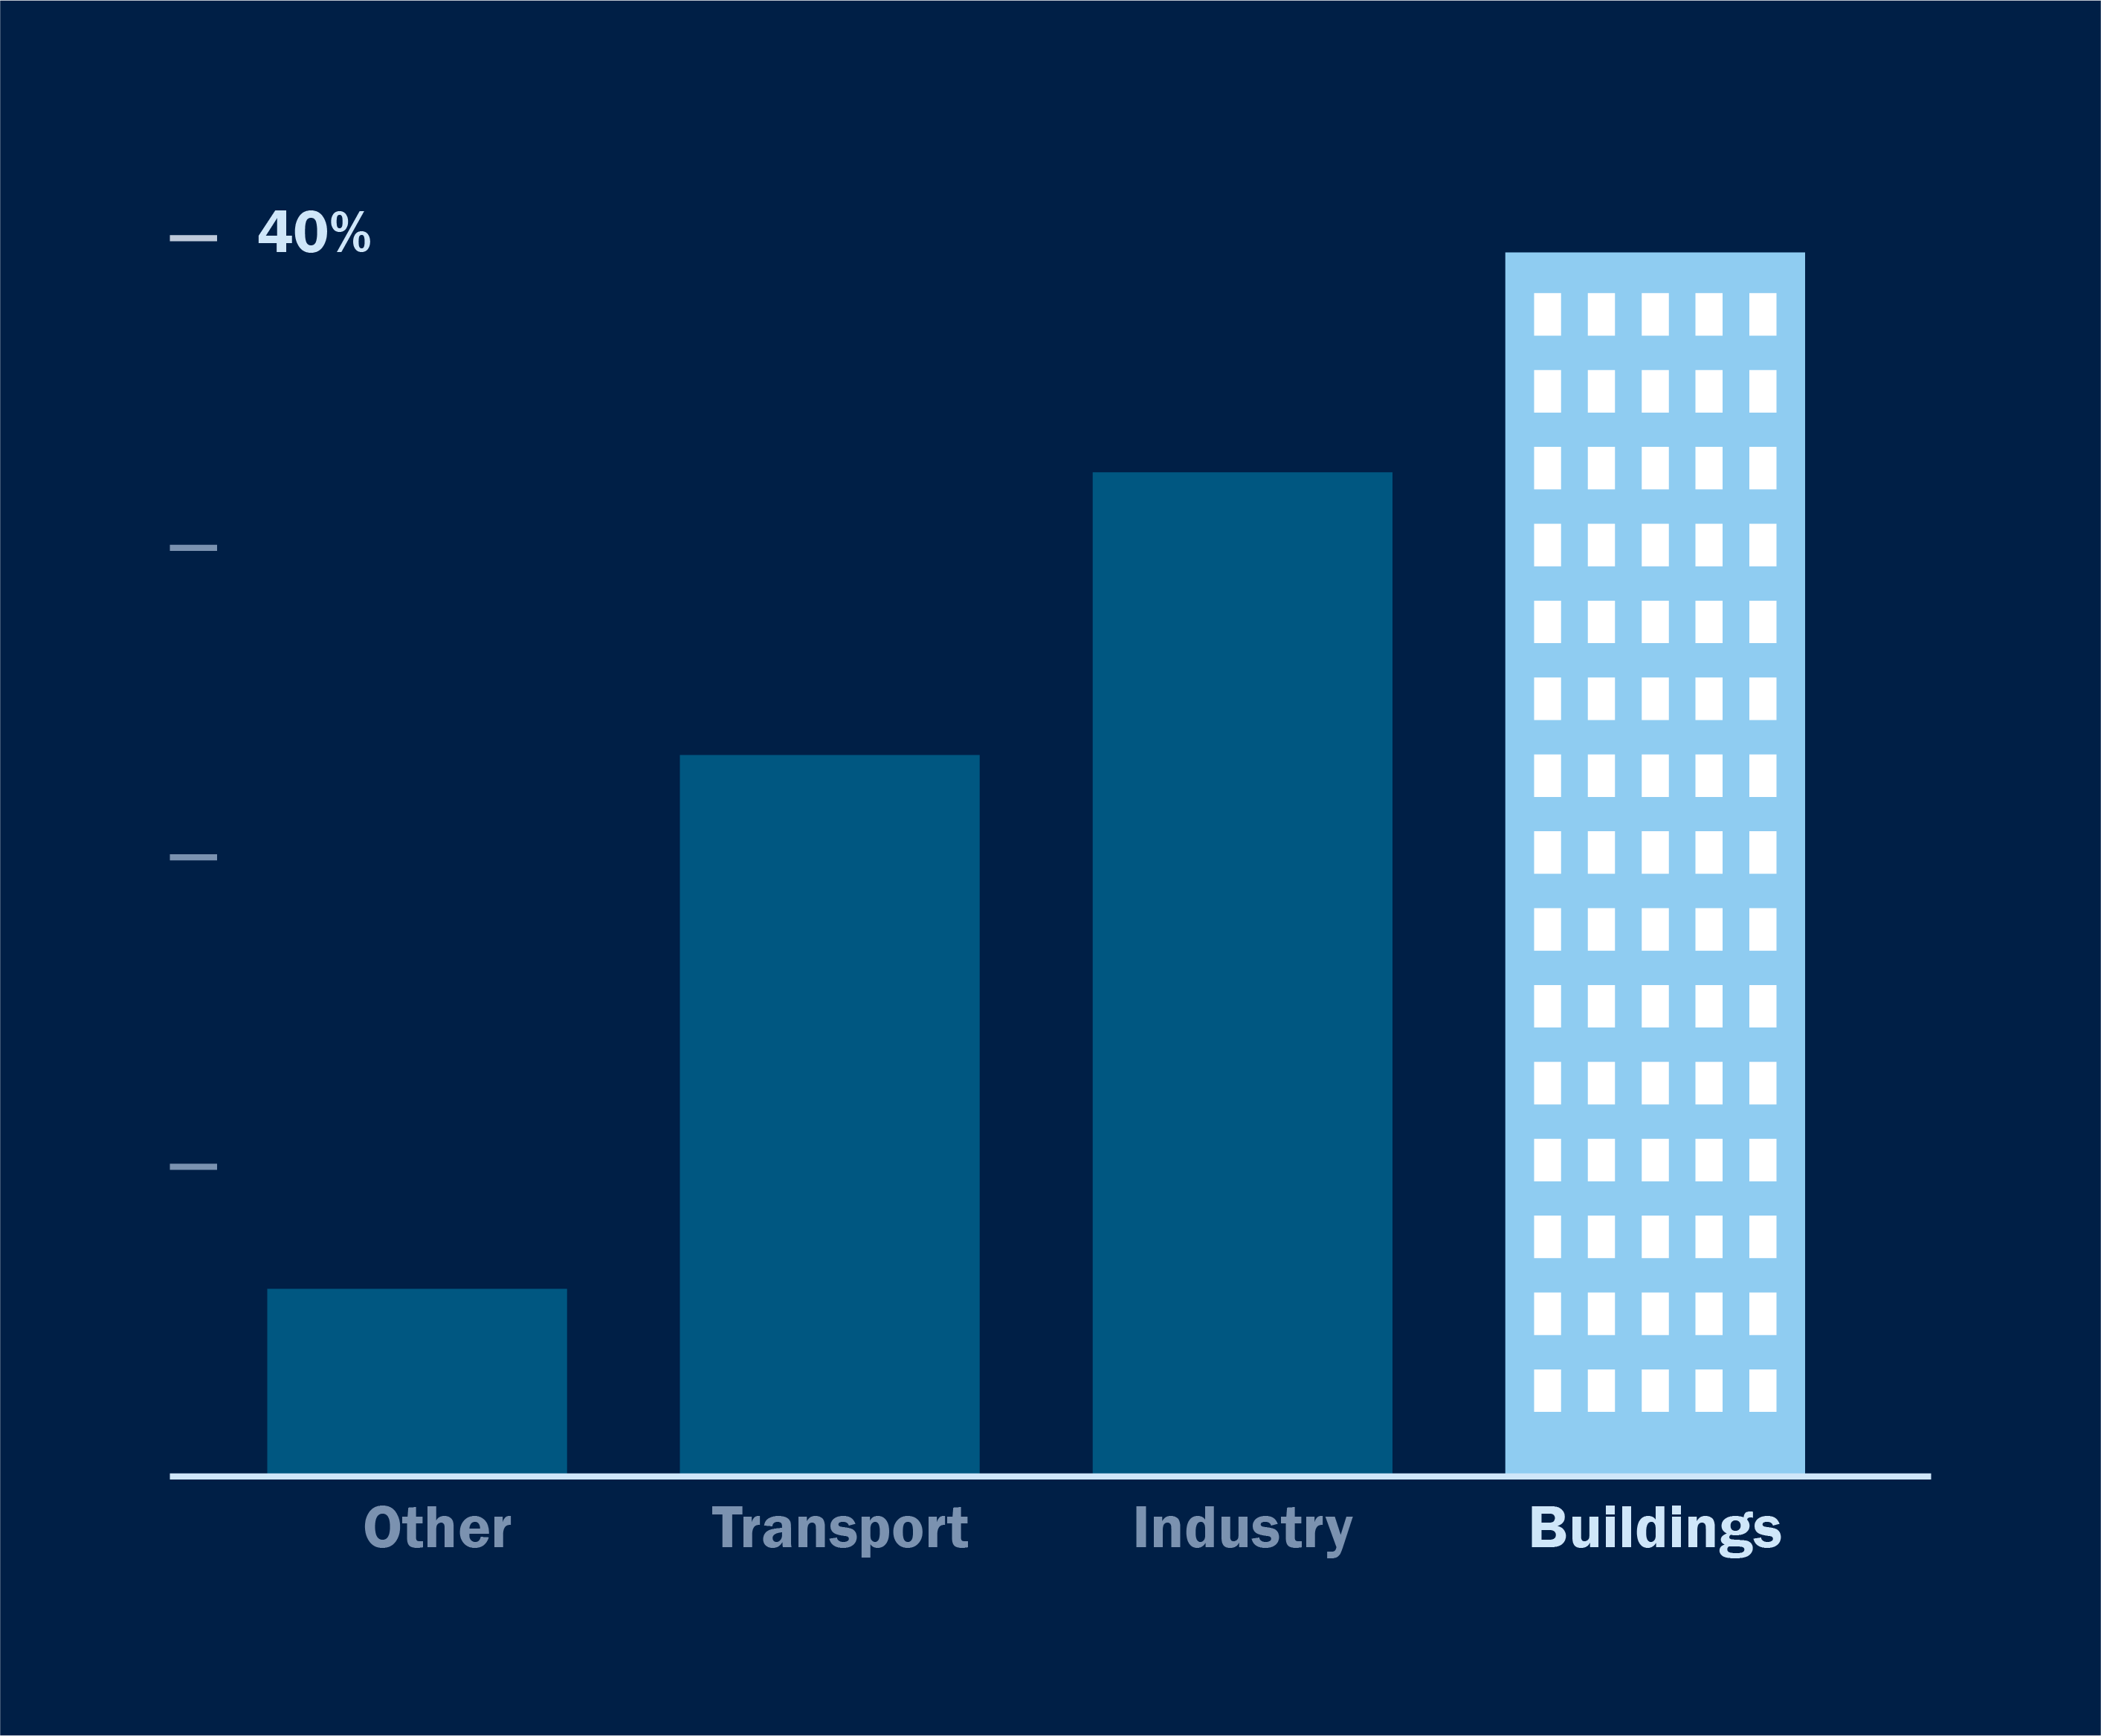 Buildings account for nearly 40% of global carbon emissions